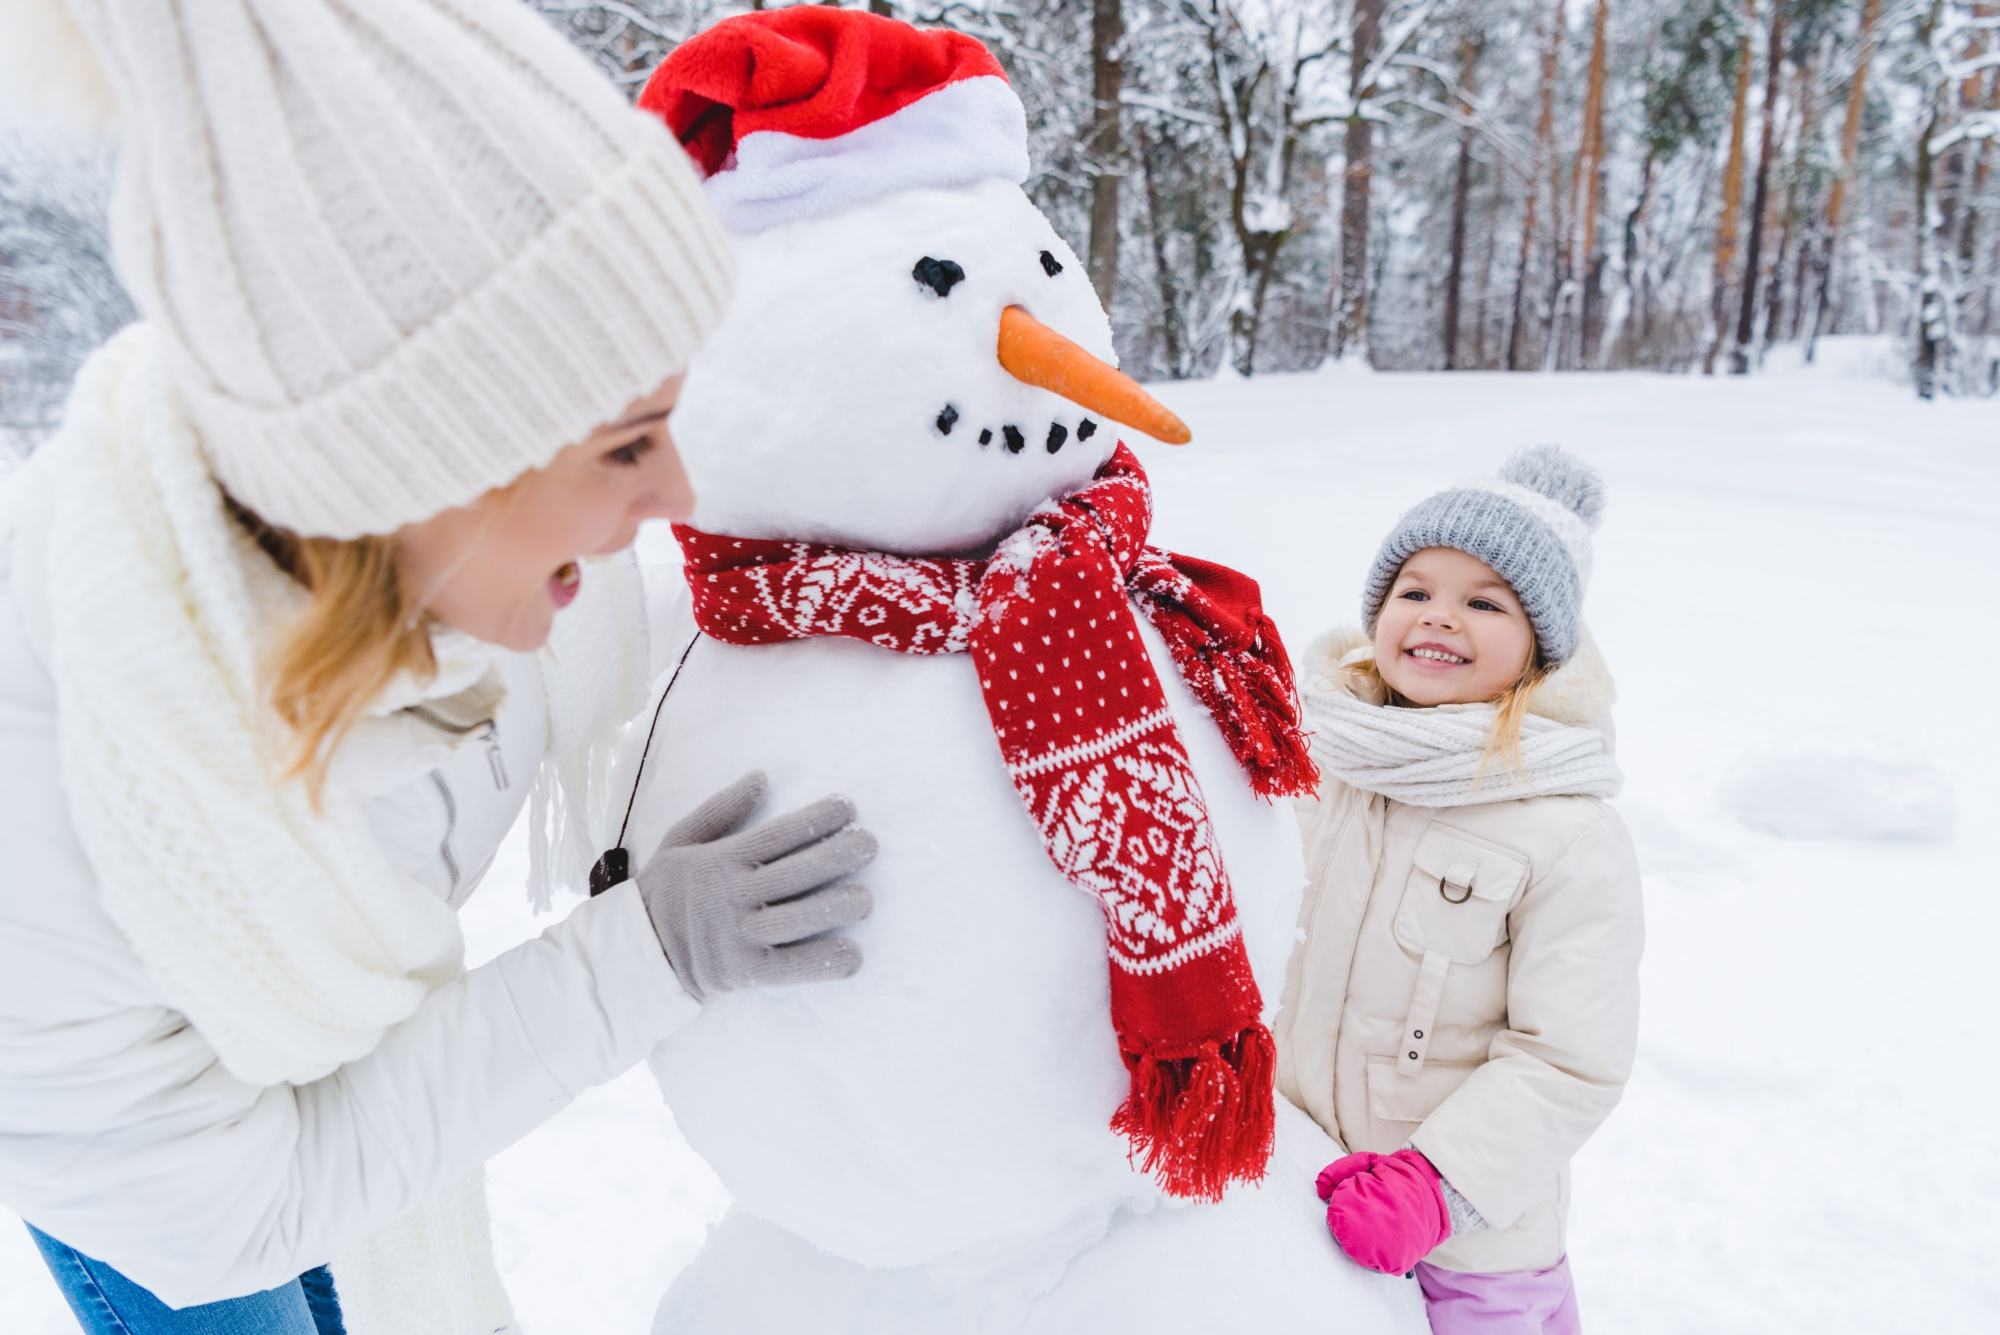 benefits of being outside during winter, happy mother and daughter playing with snowman in winter park